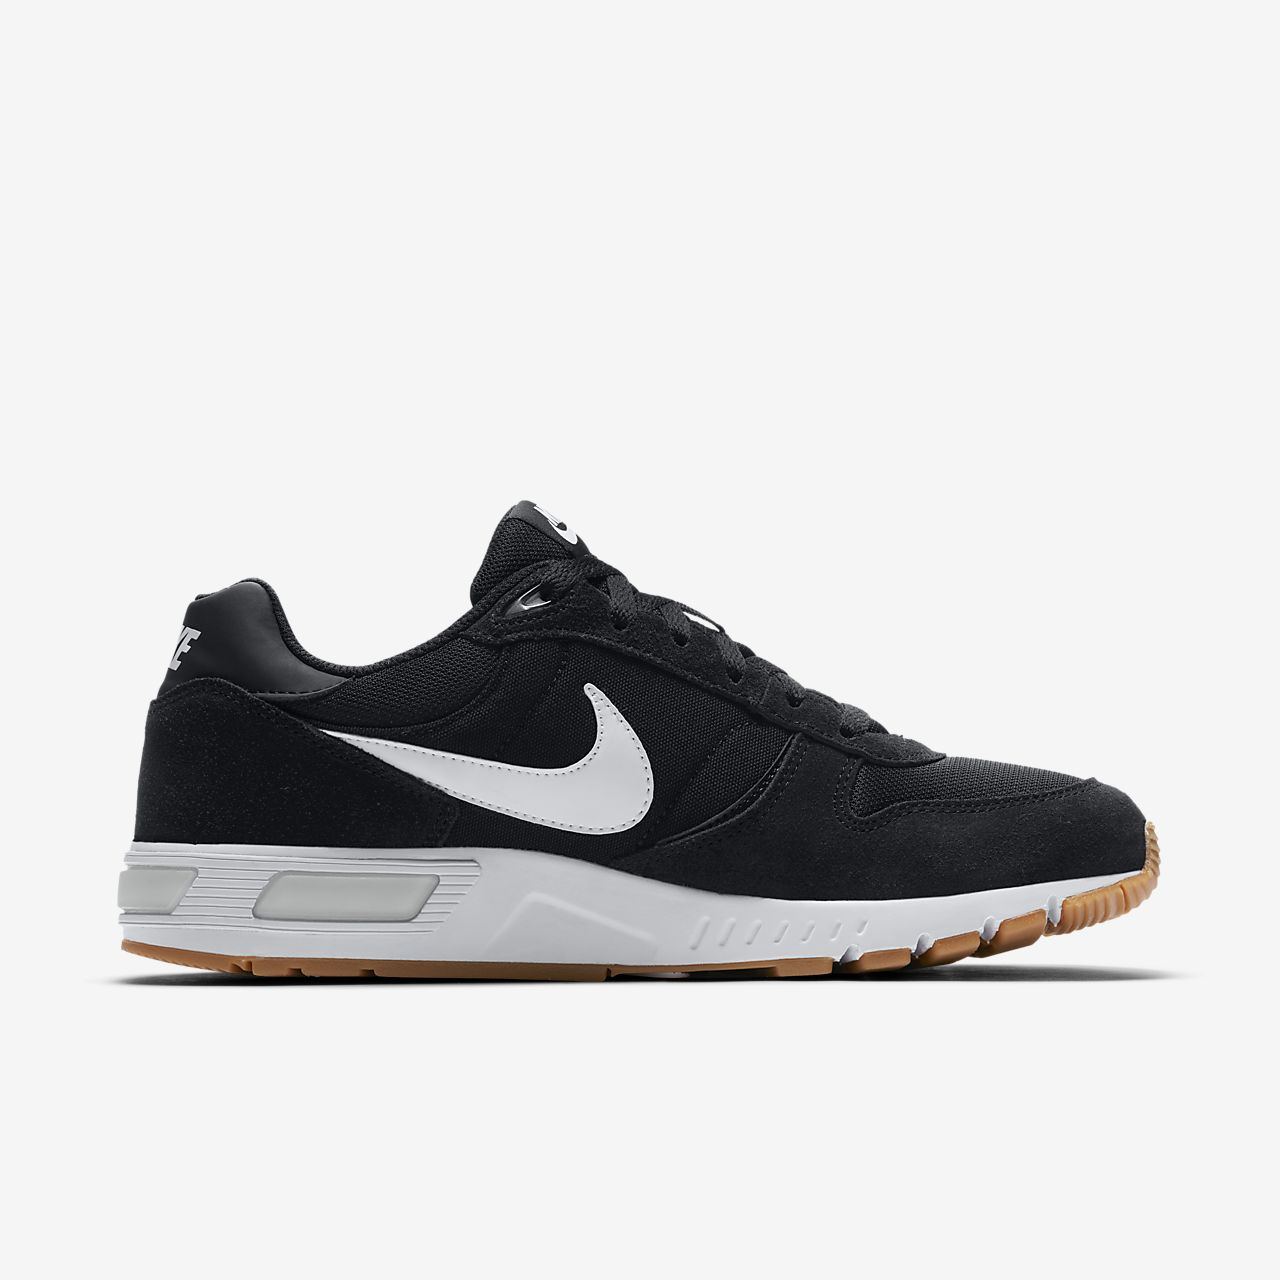 Nightgazer Nike Chaussures Pour Hommes GtQWxdK3